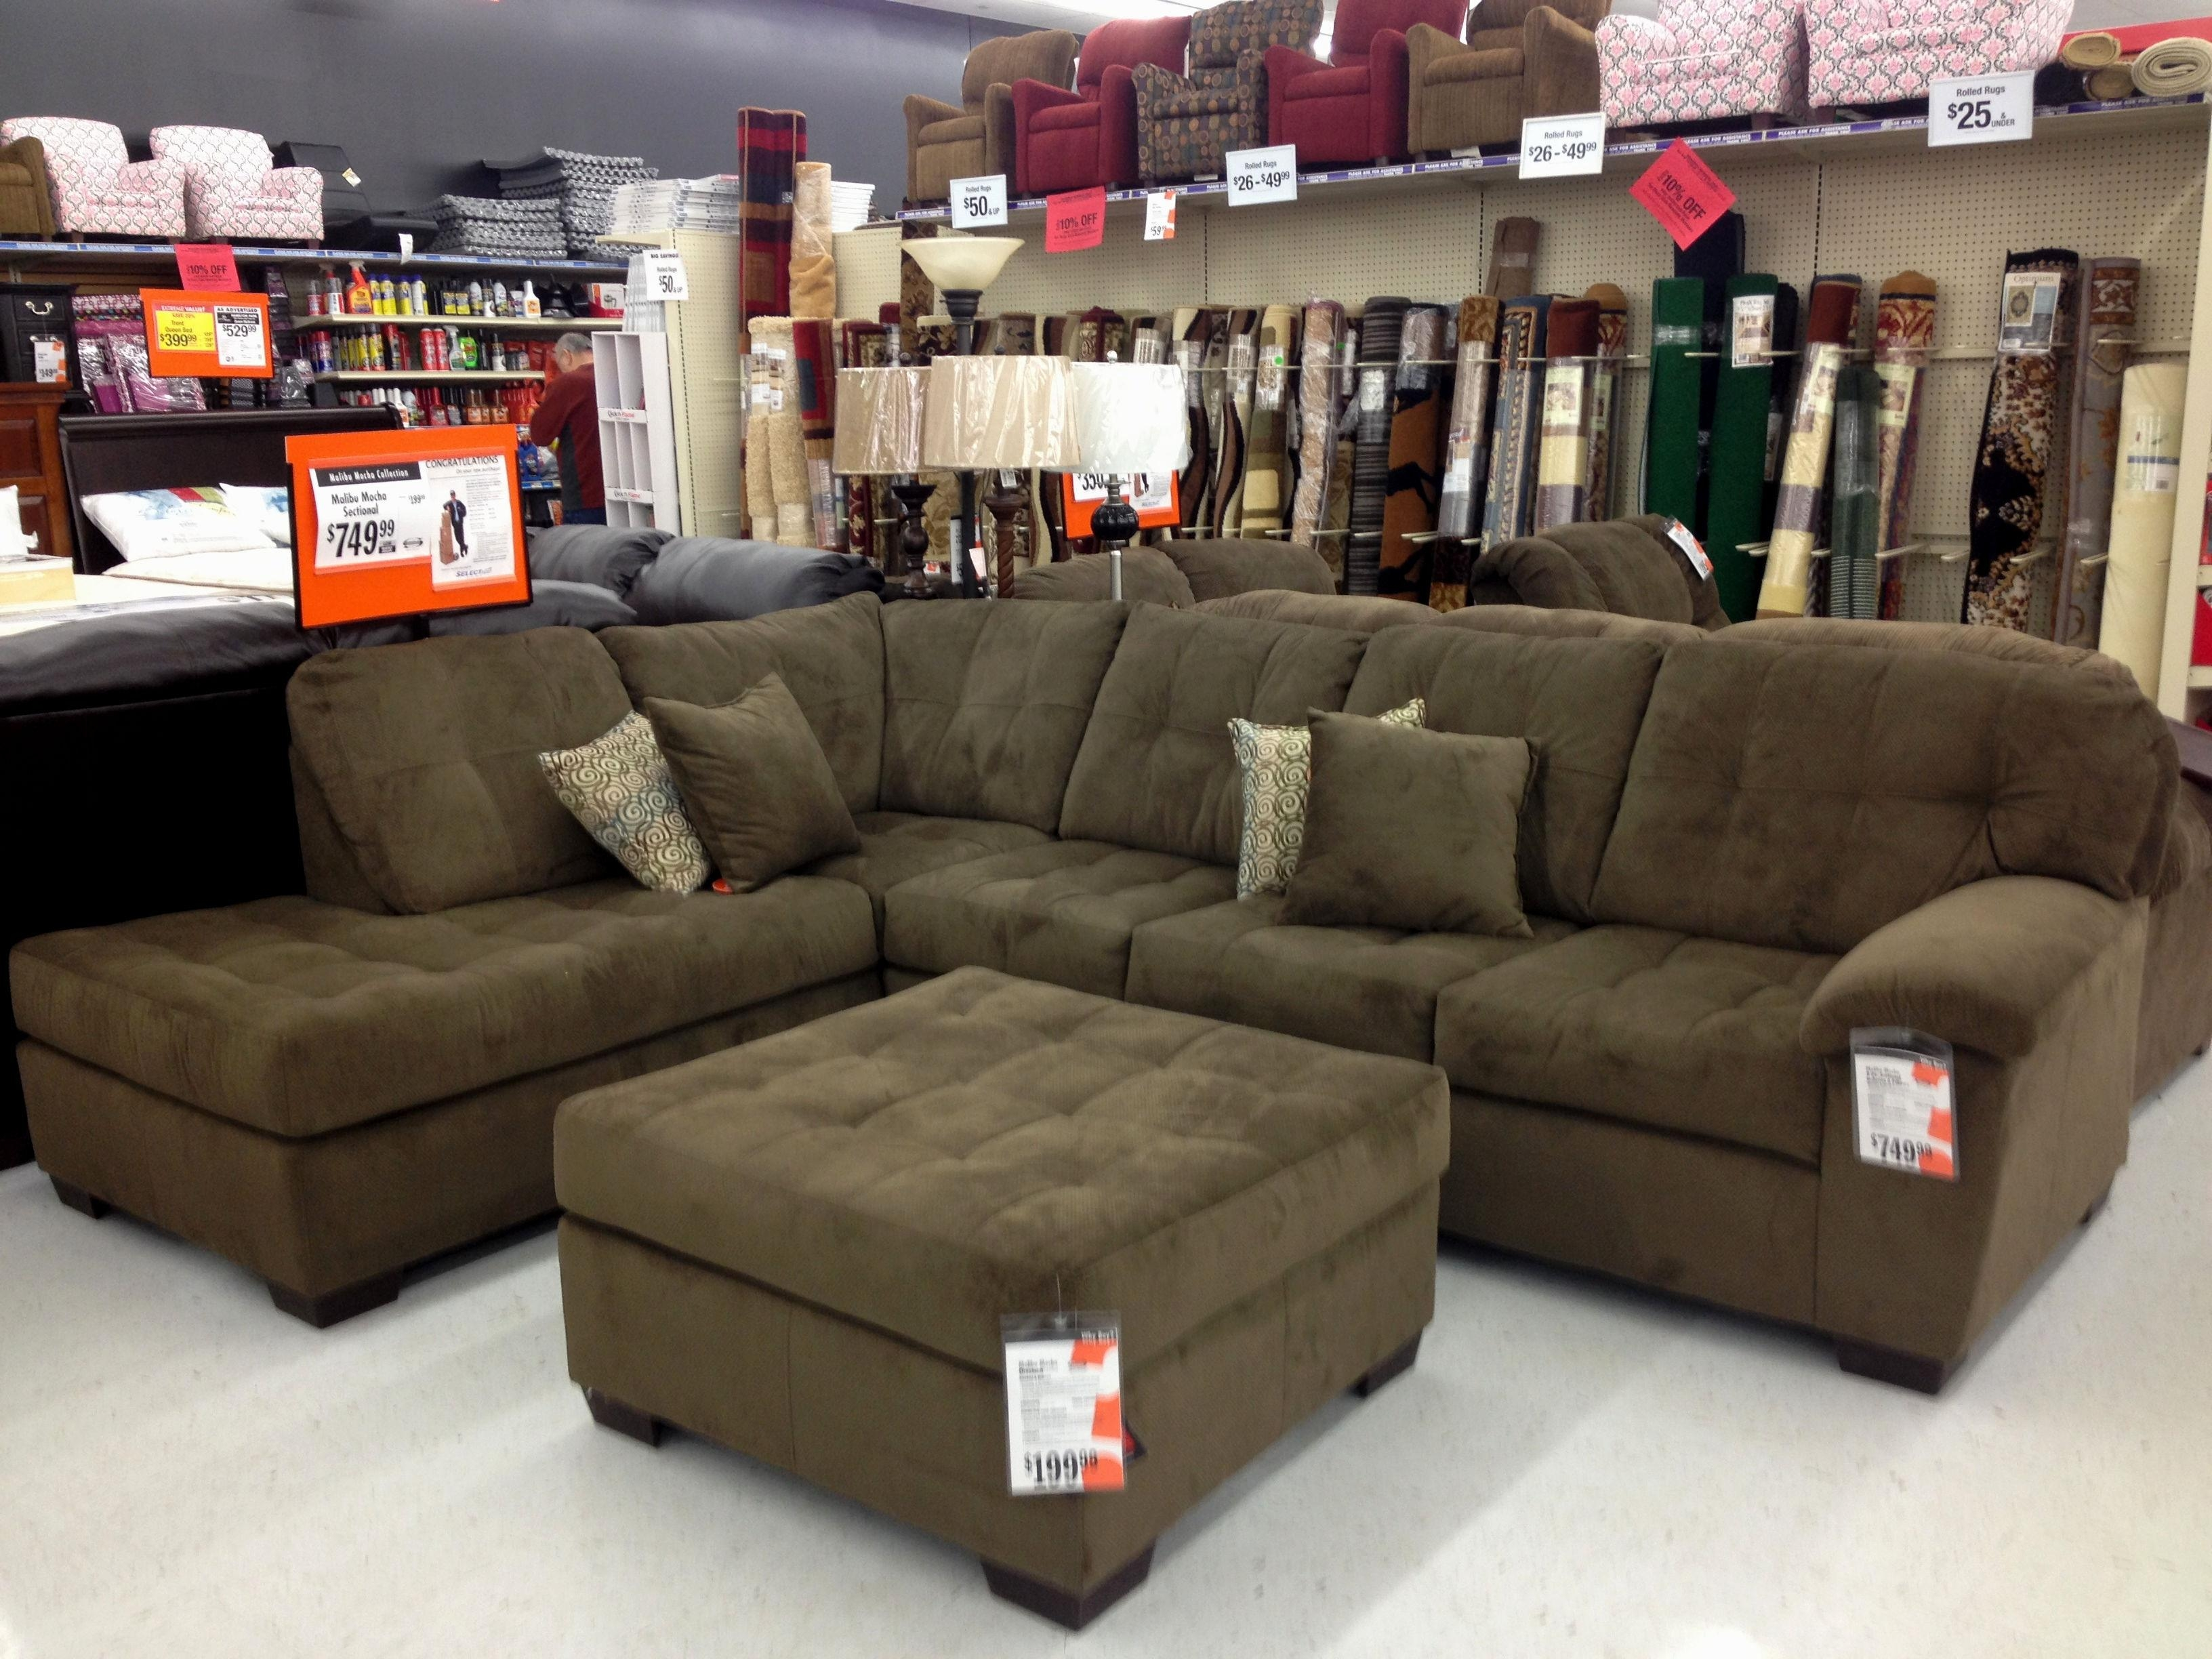 Sectional Sofas Big Lots 2 | Best Home Decor Ideas Intended For Big Lots Sofas (View 4 of 20)